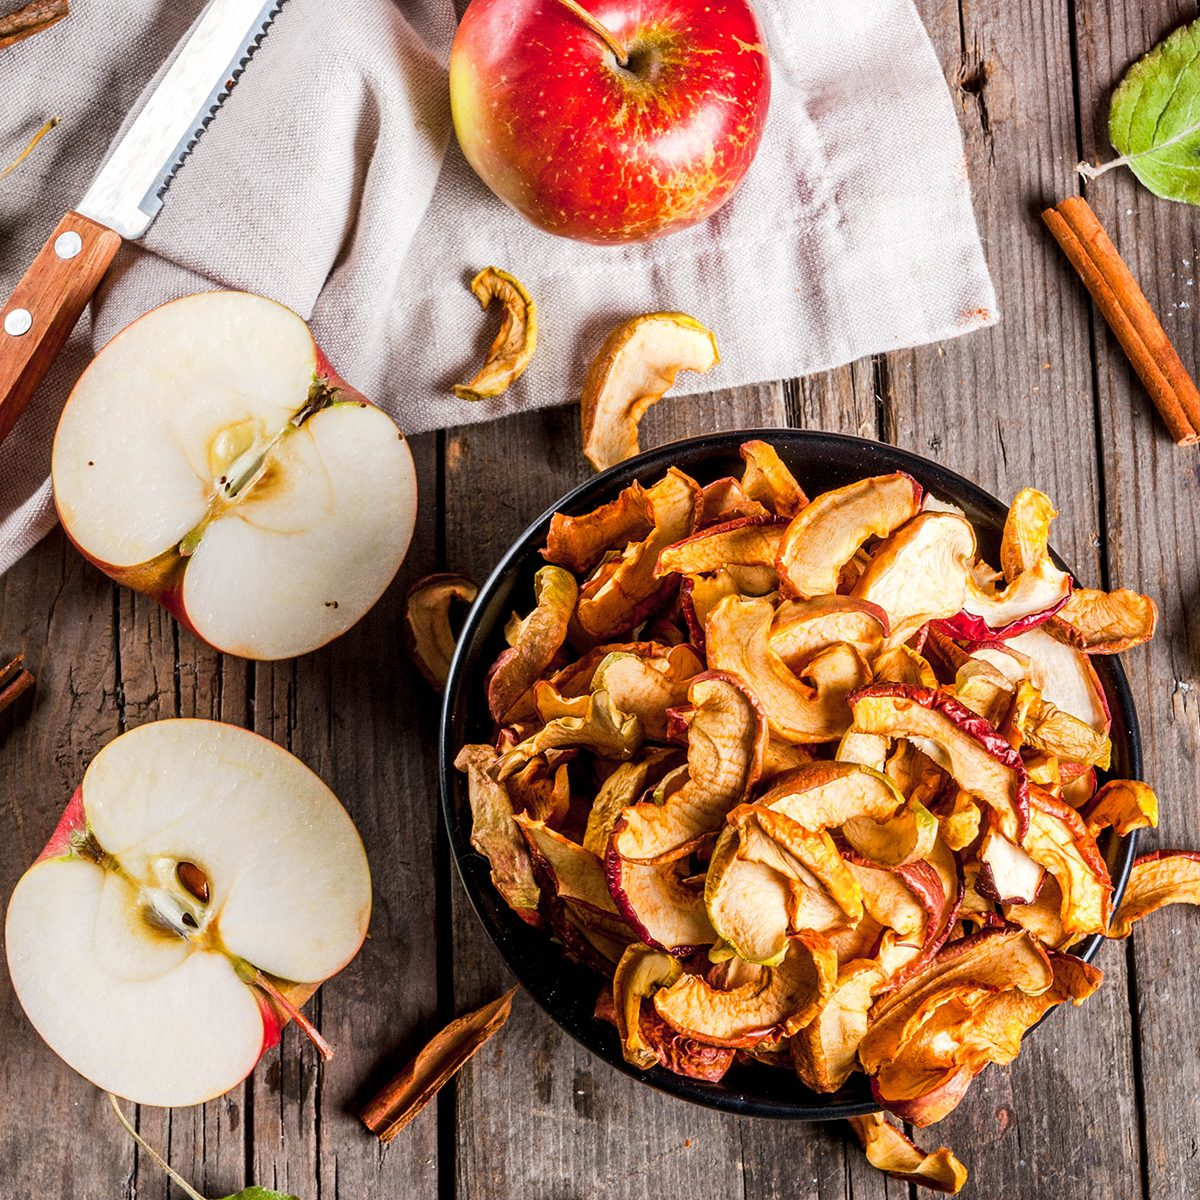 Homemade sun-dried organic apple slices, crispy apple chips, on an old rustic wooden table with fresh apple and cinnamon. Copy space top view